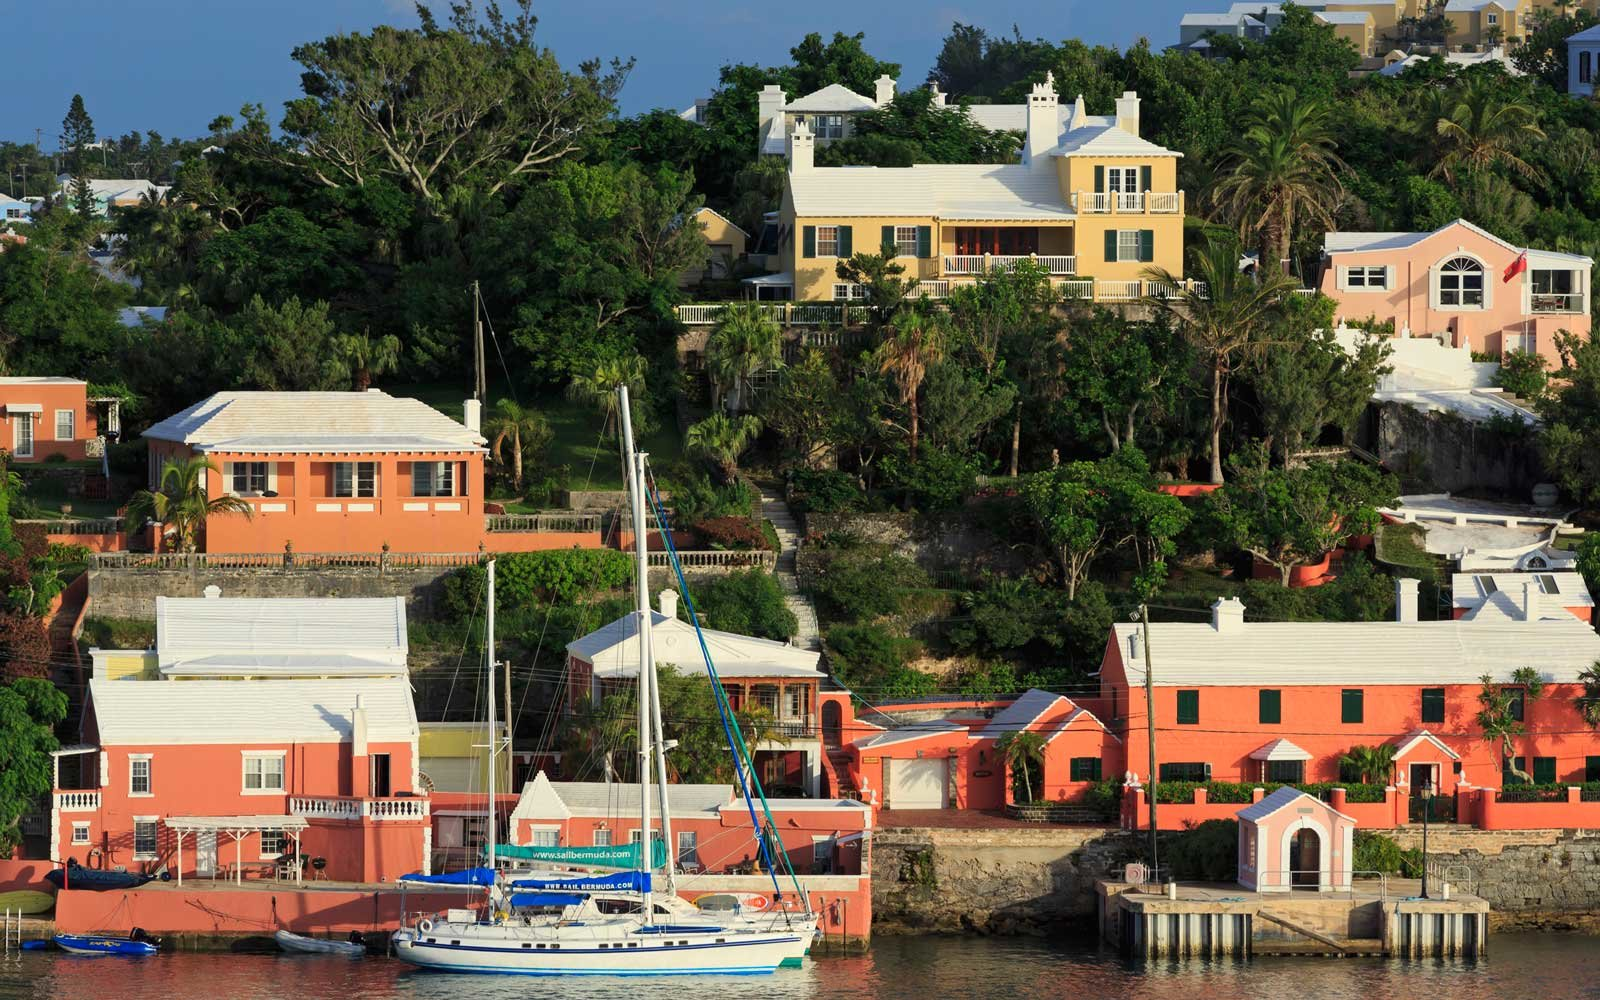 Architecture in Paget Parish, Bermuda